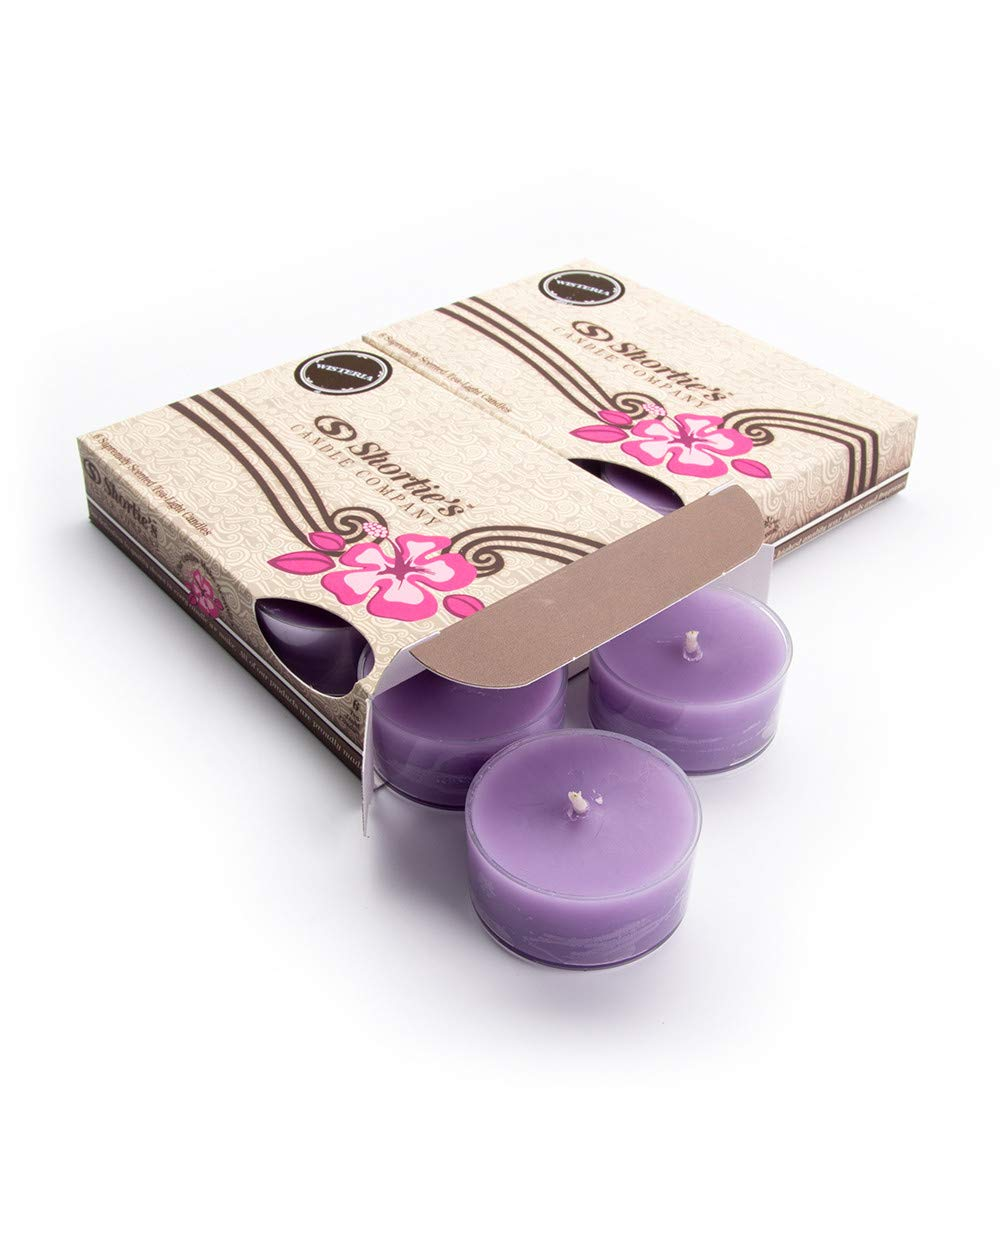 Clear Cup for Beautiful Candlelight 12 Purple Highly Scented Tea Lights Pure English Lavender Tealight Candles Multi Pack - Made with Essential /& Natural Oils Flower /& Floral Collection